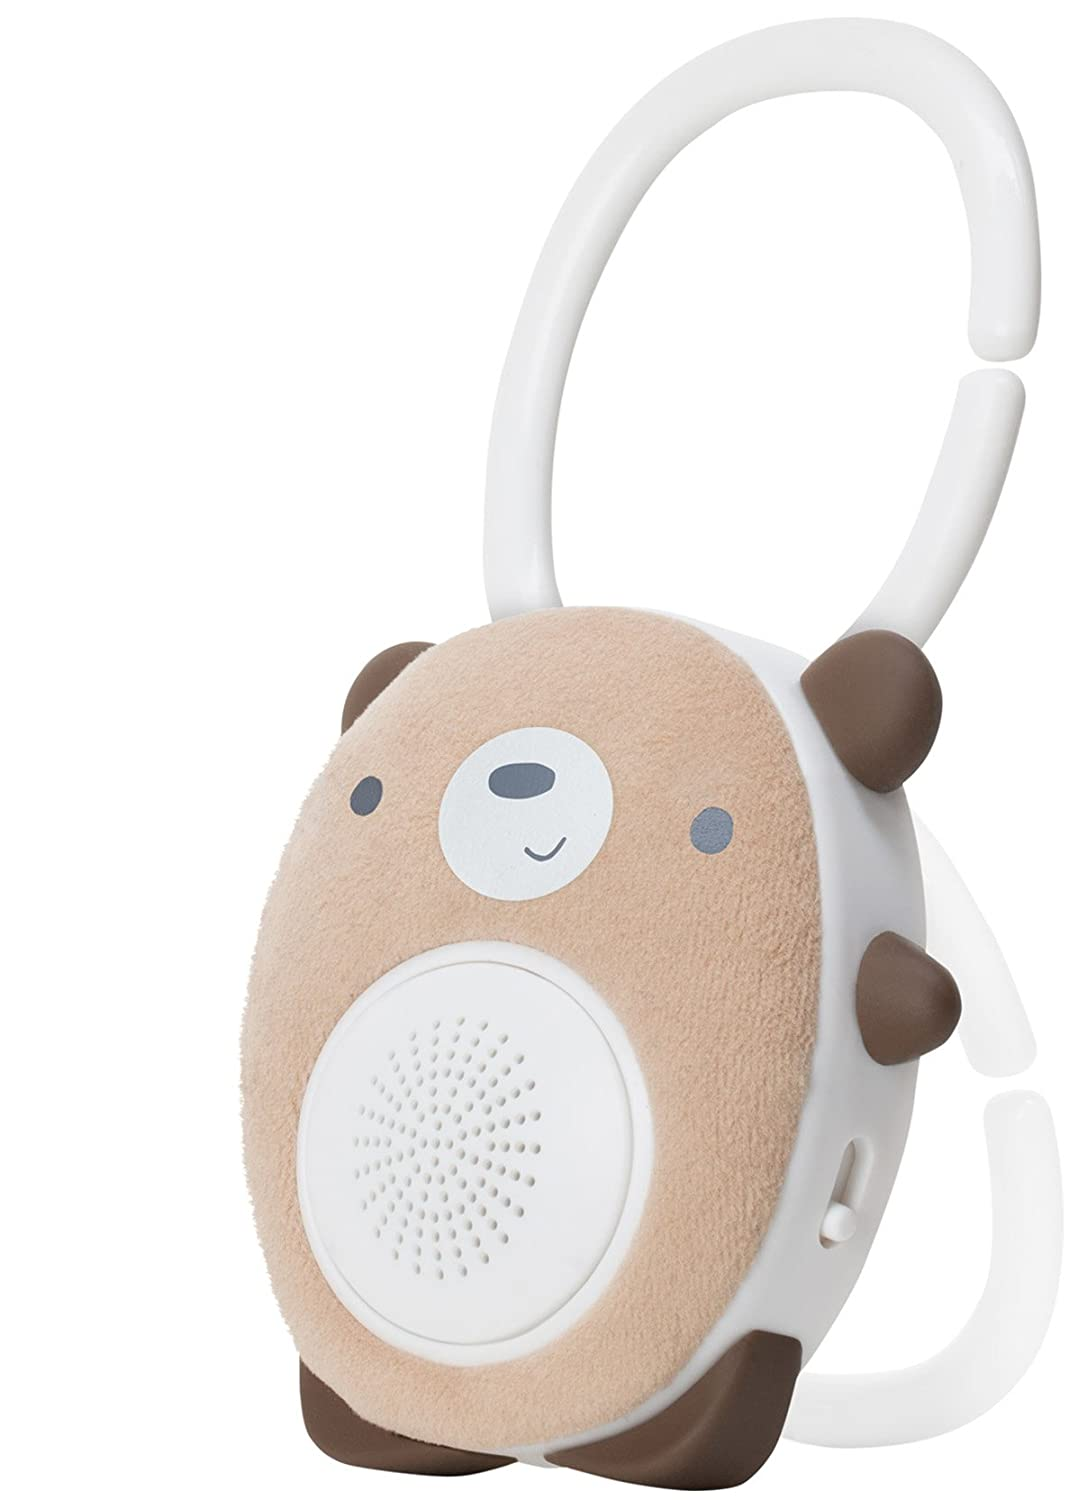 SoundBub by WavHello, White Noise Machine and Bluetooth Speaker | Portable and Rechargeable Baby Sleep Sound Soother – Bella the Bunny, White WH-22-457